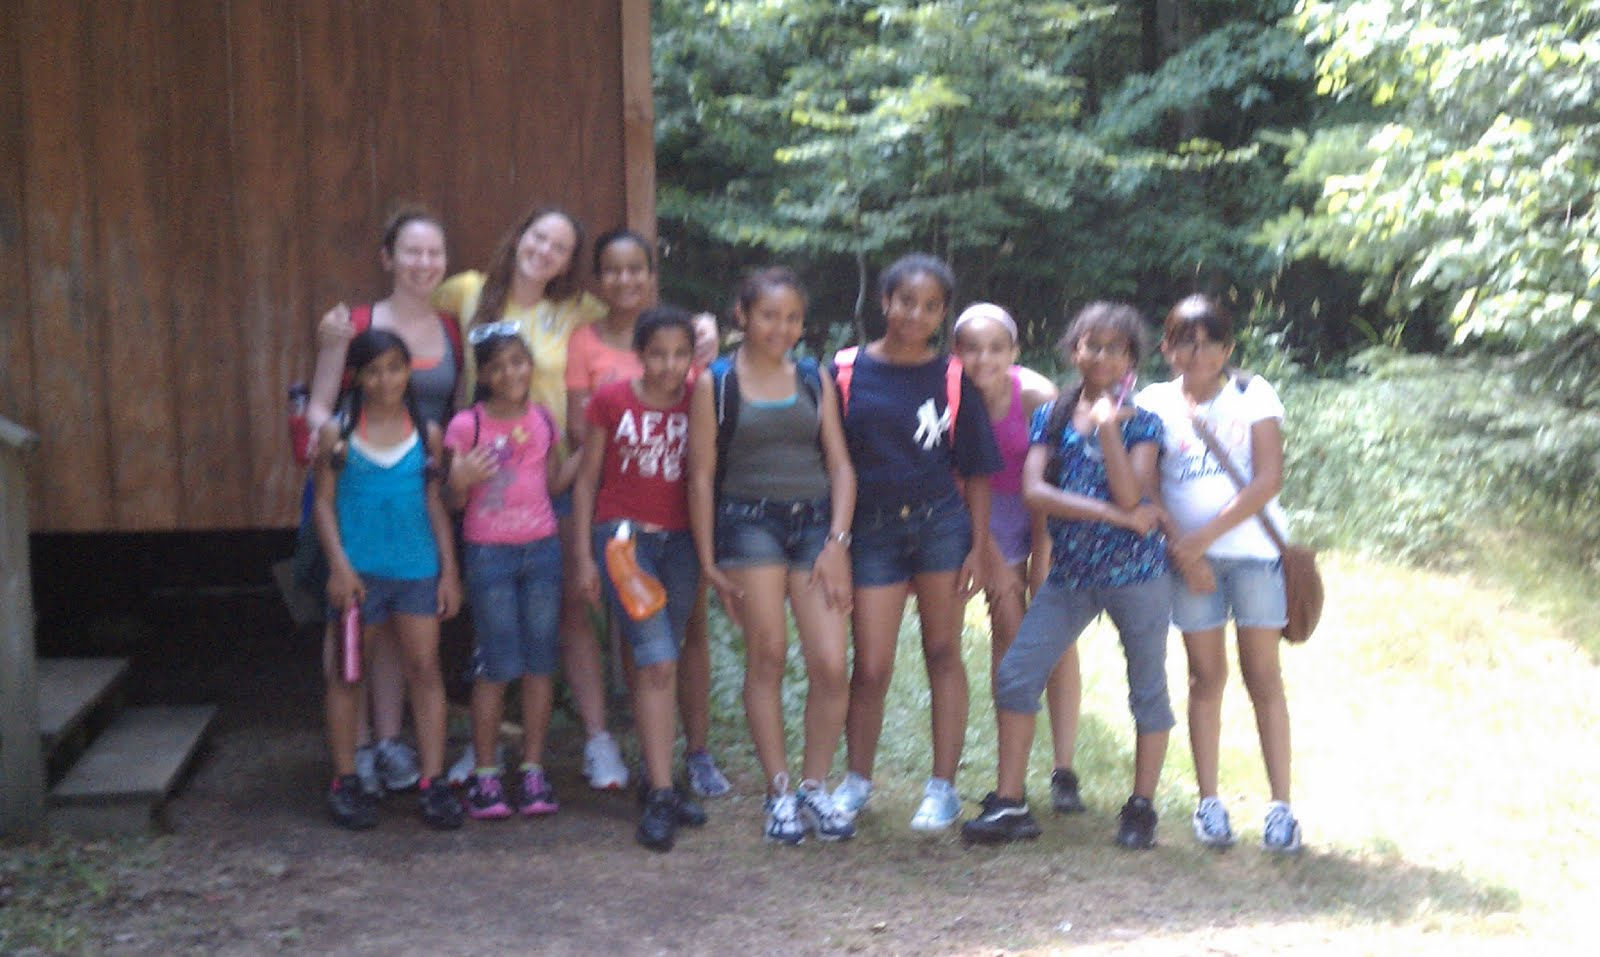 St ignatius girls camp 2012 cabin 2 hike for The girl in the cabin